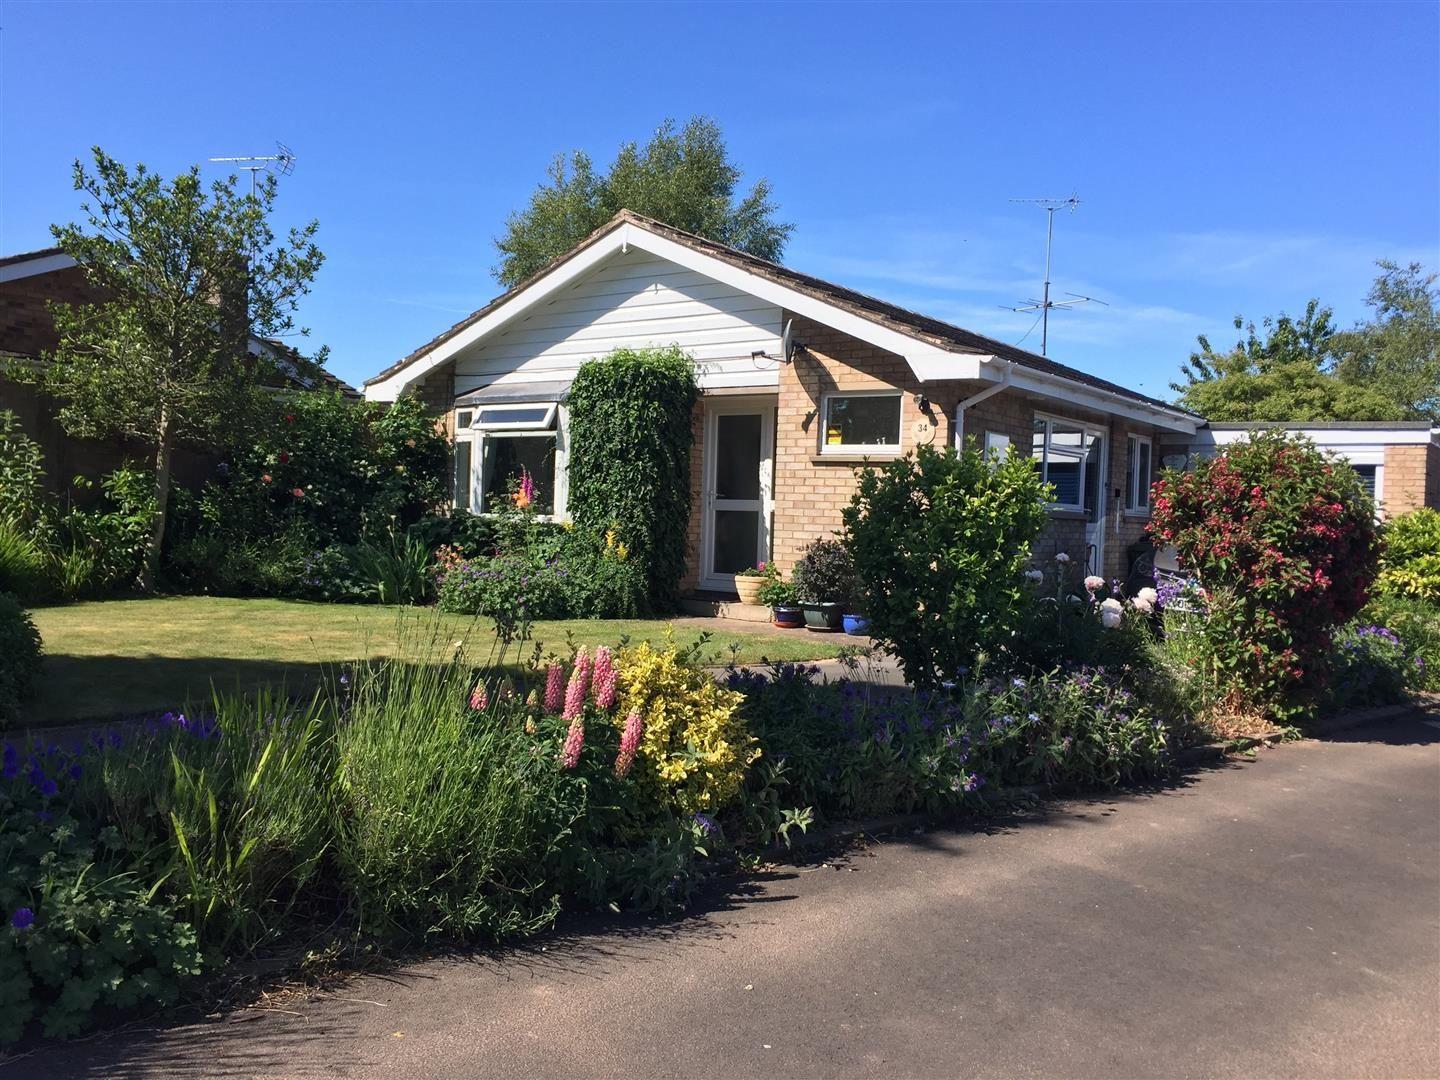 2 bed detached-bungalow for sale in Bodenham, HR1